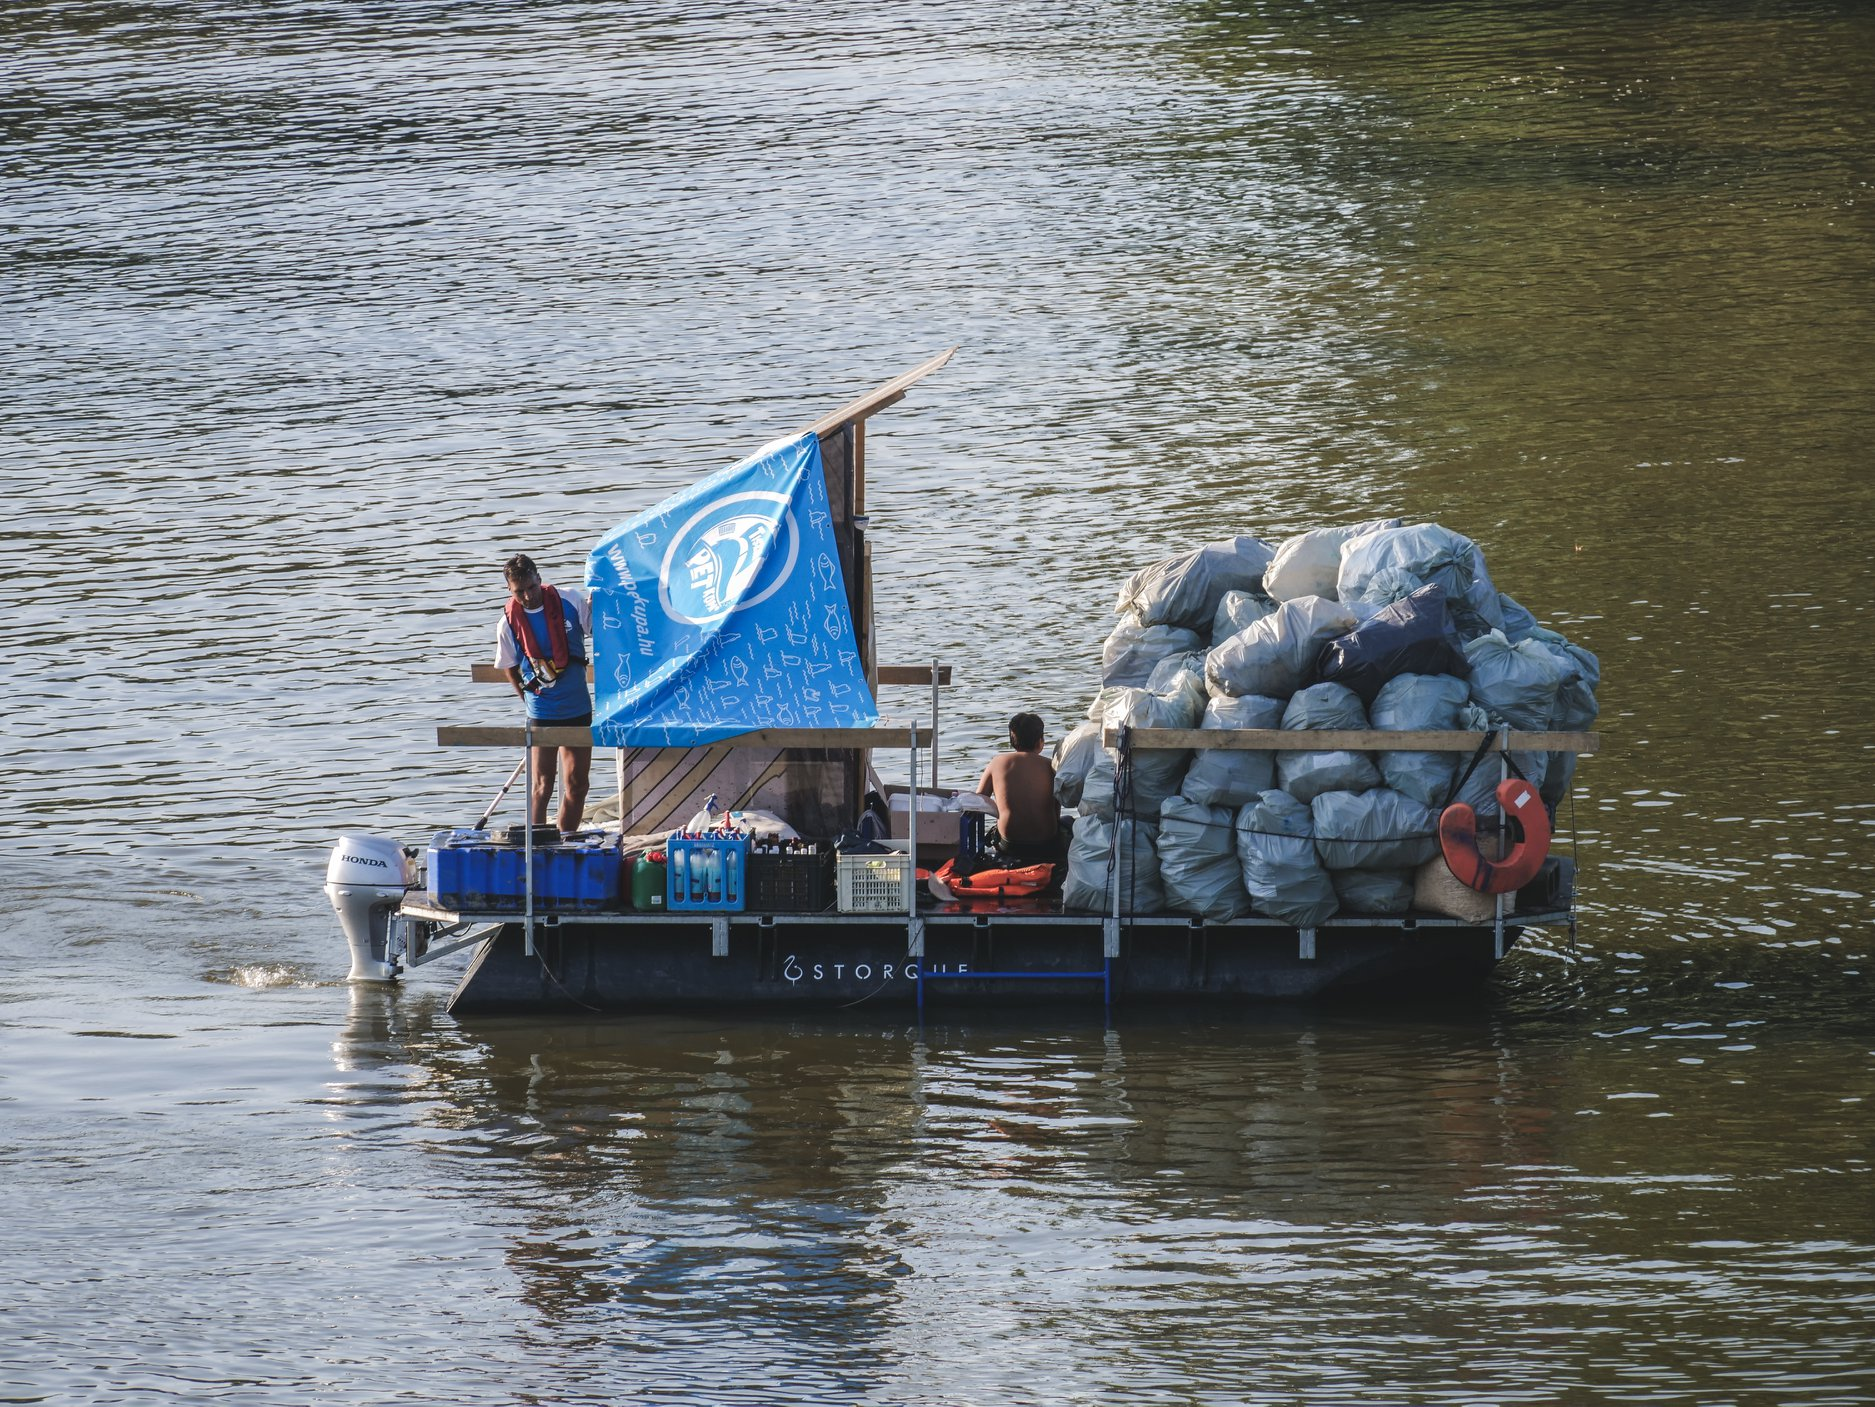 The 8th PLASTIC Cup collected ten tons of trash from Záhony to Tokaj on the Tisza River.